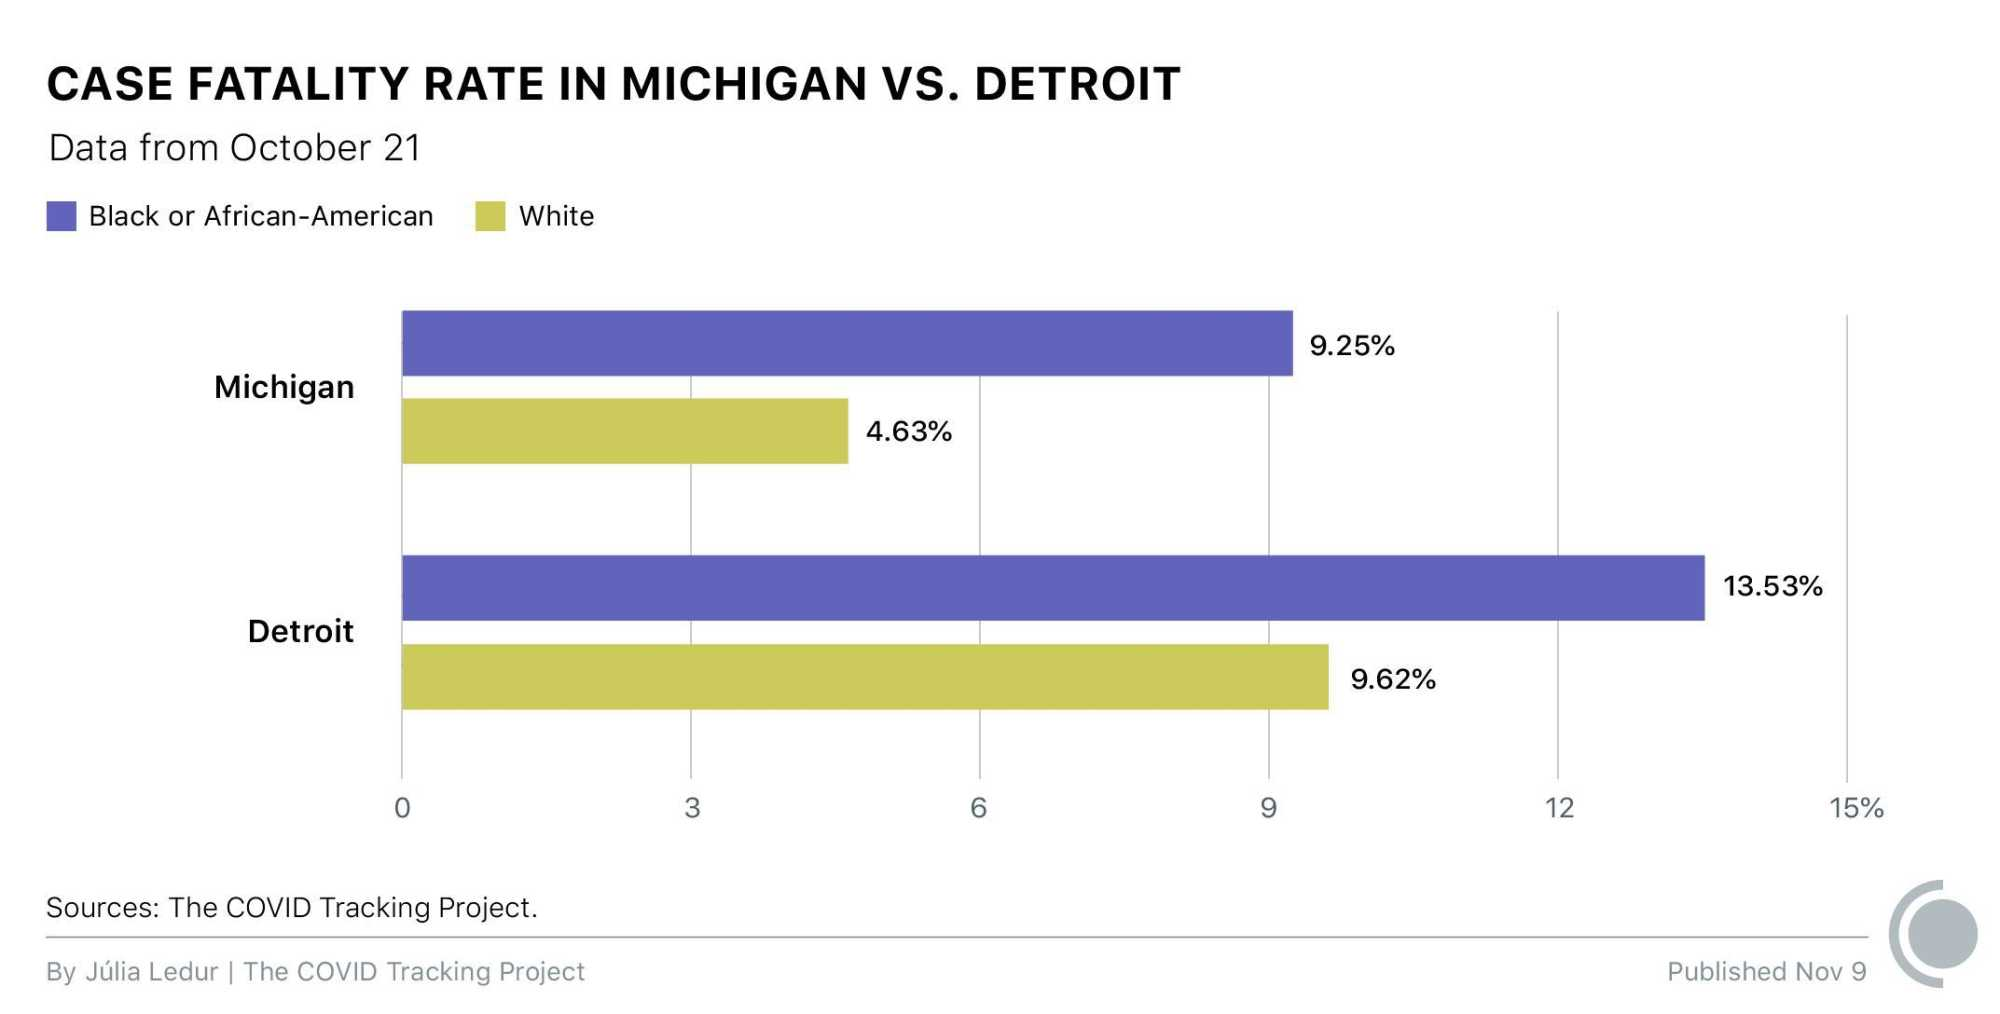 A double bar graph compares the case fatality rate of Black and African American people and White people in the state of Michigan and also for just the city of Detroit. In the state of Michigan, the case fatality rate for Black people is over 9% but under 5% for White people. In the city of Detroit, the case fatality rate for Black and African American people is 13.53% and 9.62% for White people. All data is as of October 21.